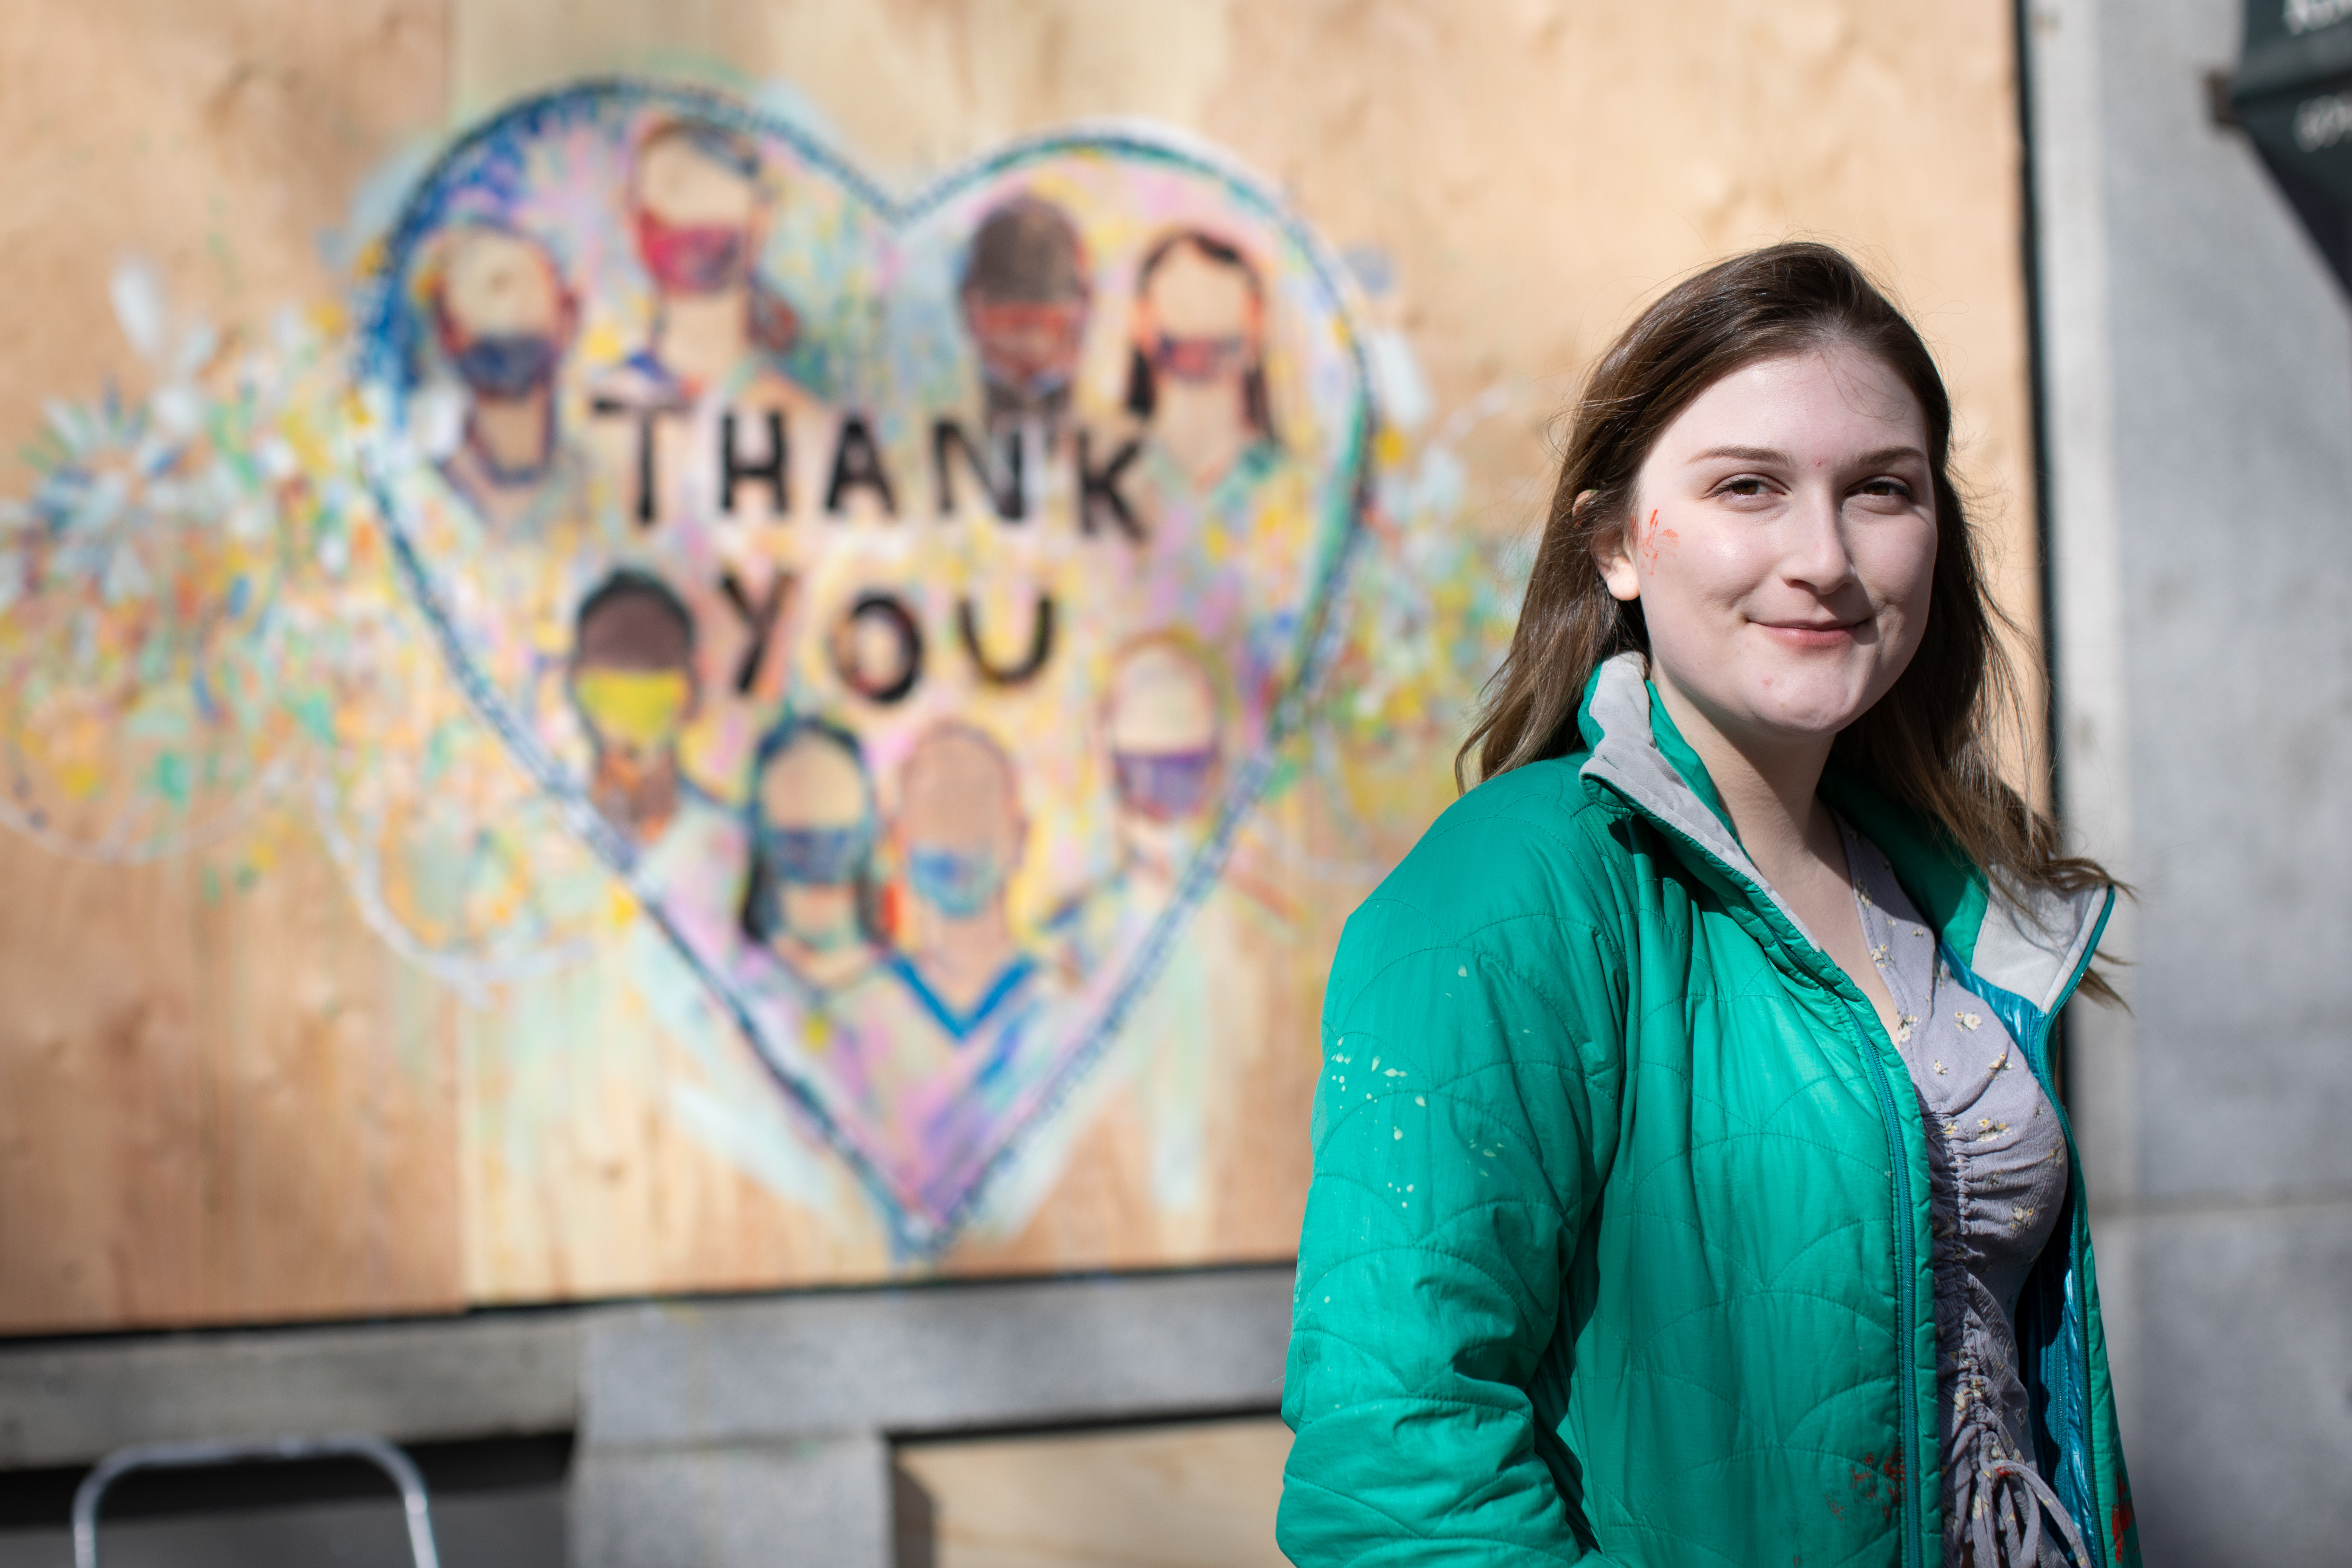 Artist Sarah Orsmond's mural is a thank you message to all nurses, doctors, and respiratory therapists.